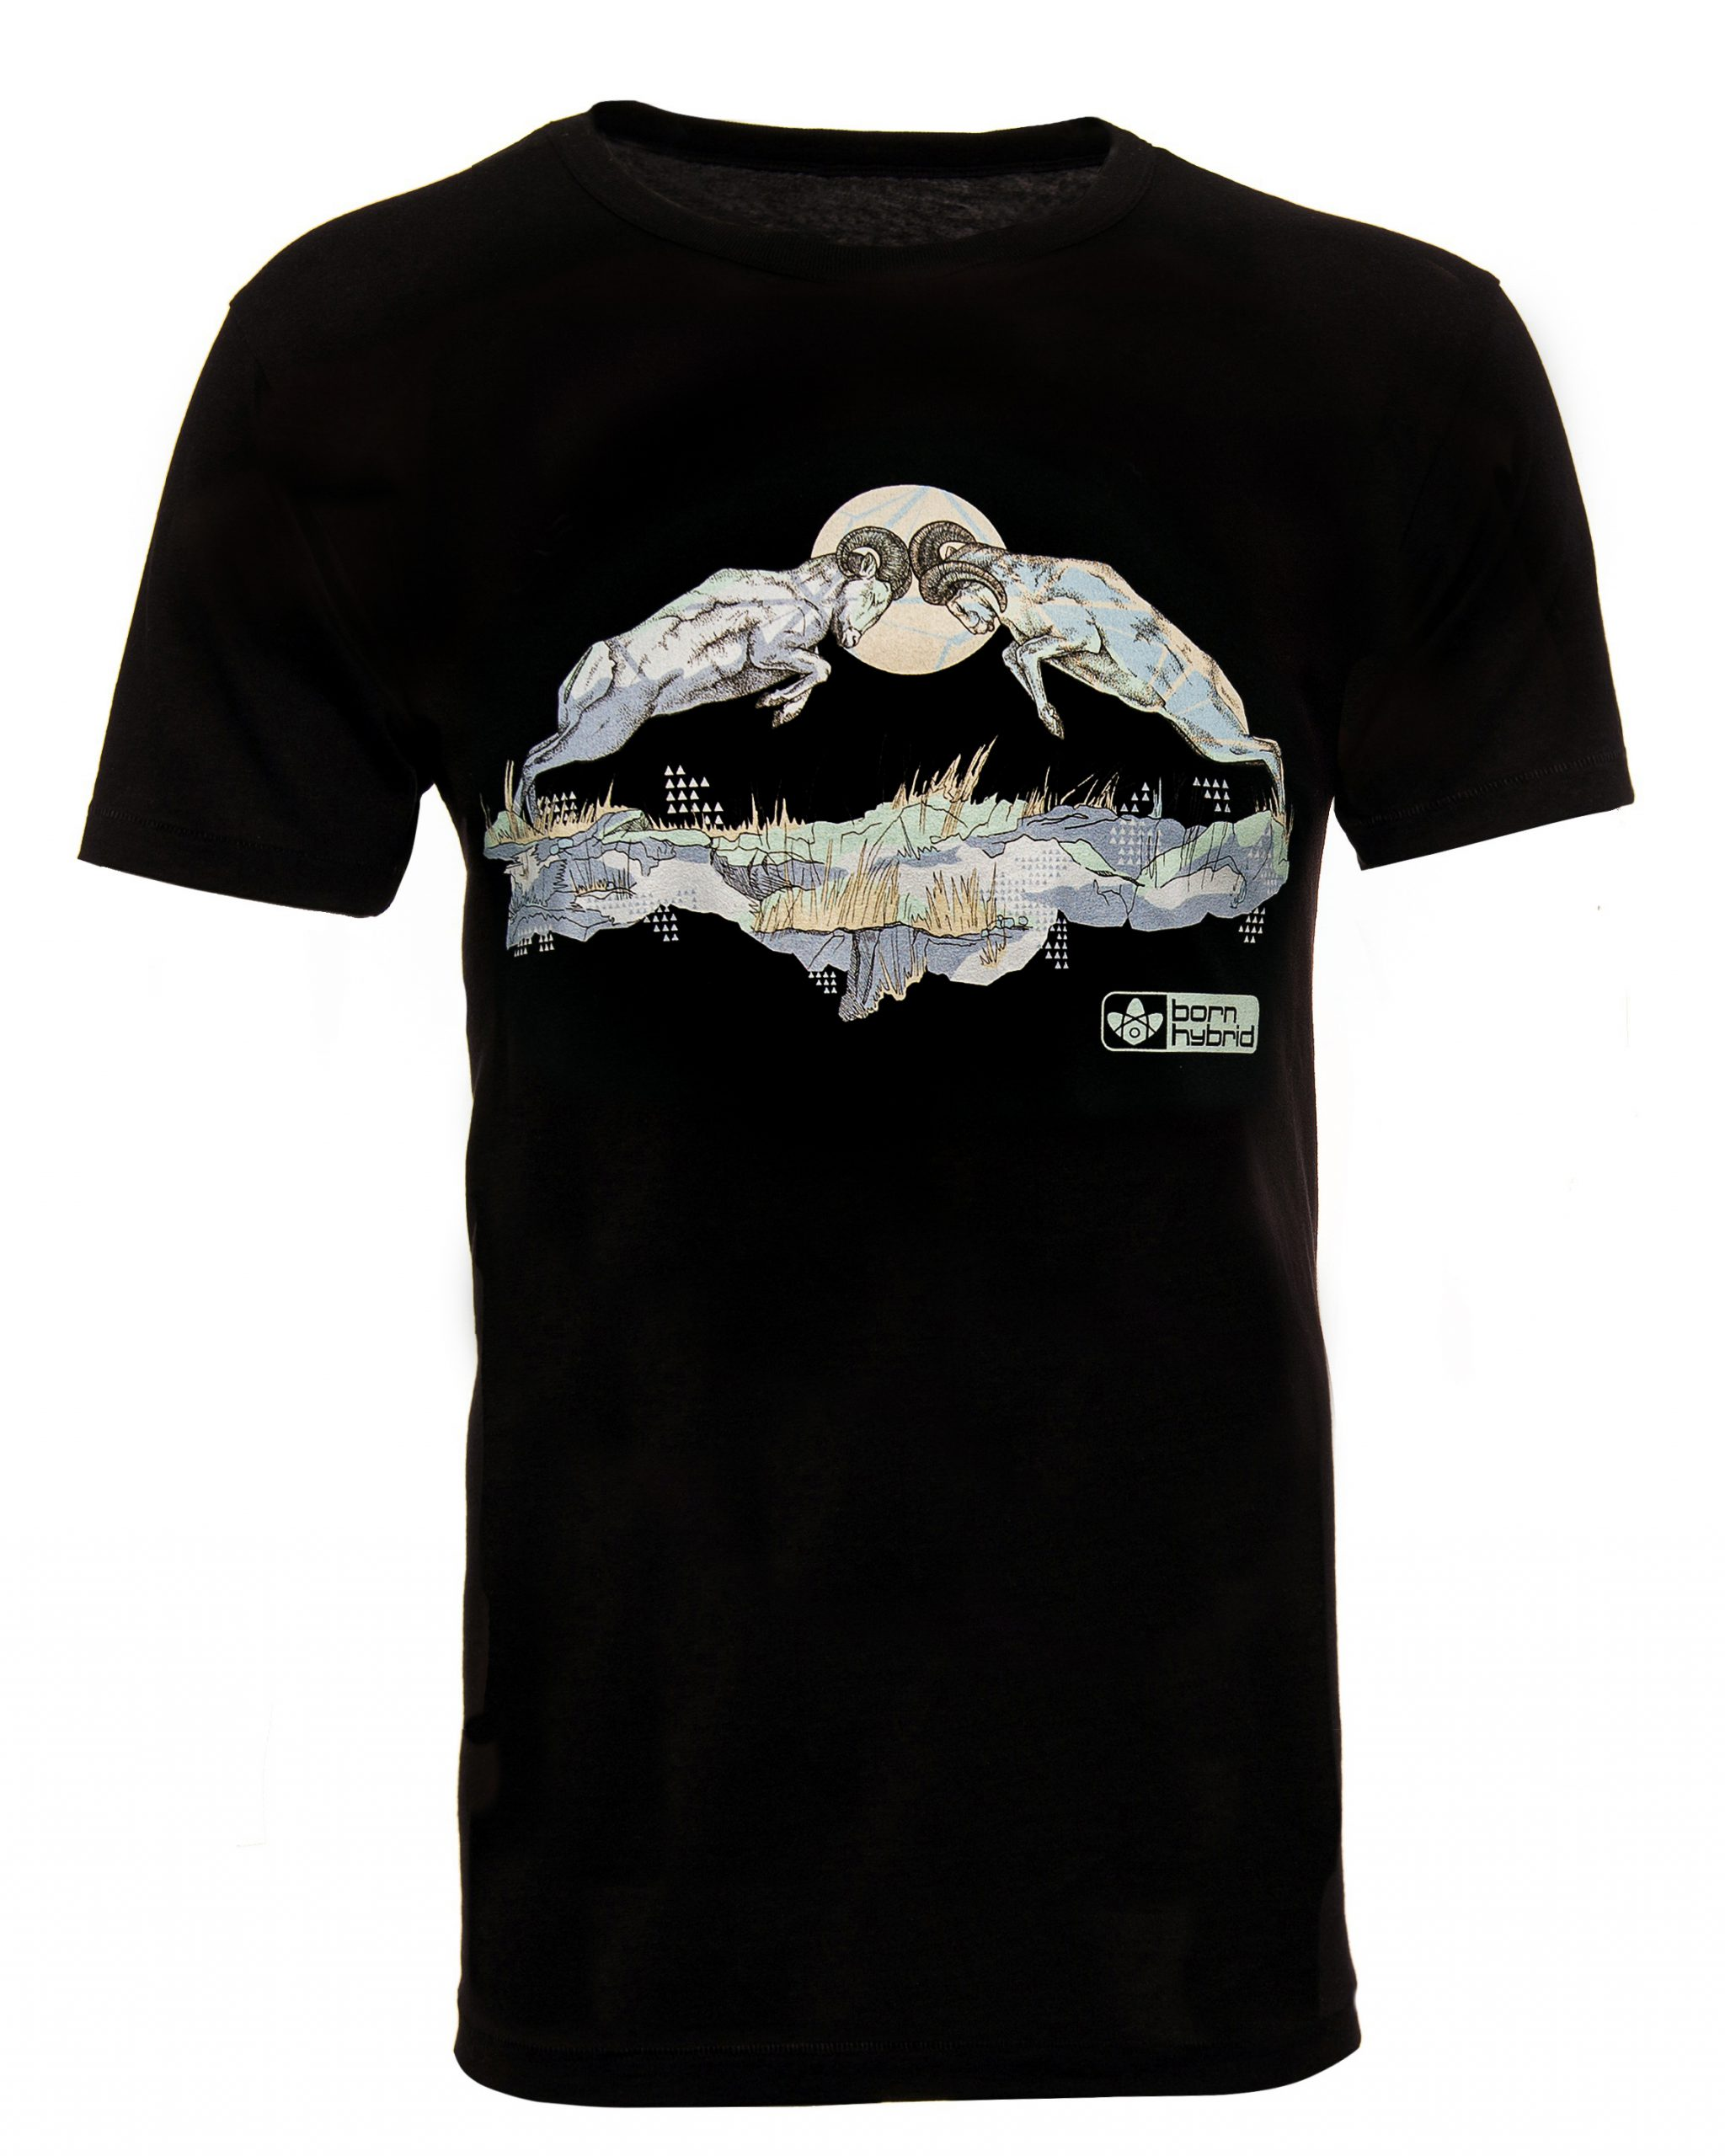 Black graphic T-shirt. Bighorn sheep t-shirt featuring two rams rutting. Eco T-shirt in organic combed cotton